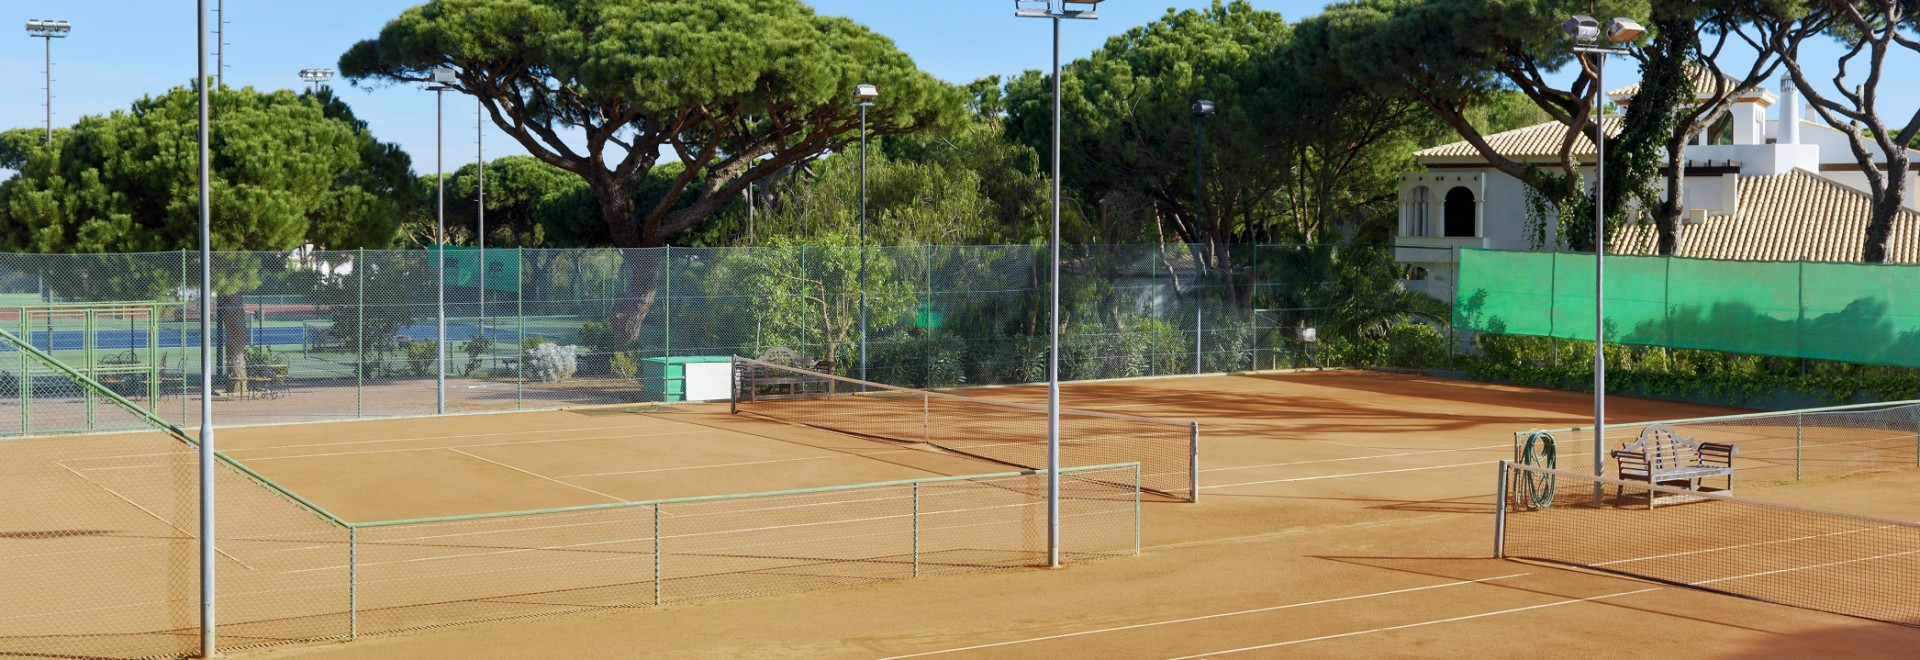 Annabel Croft Academy at Pine Cliffs Resort, Portugal - Book. Travel. Play.